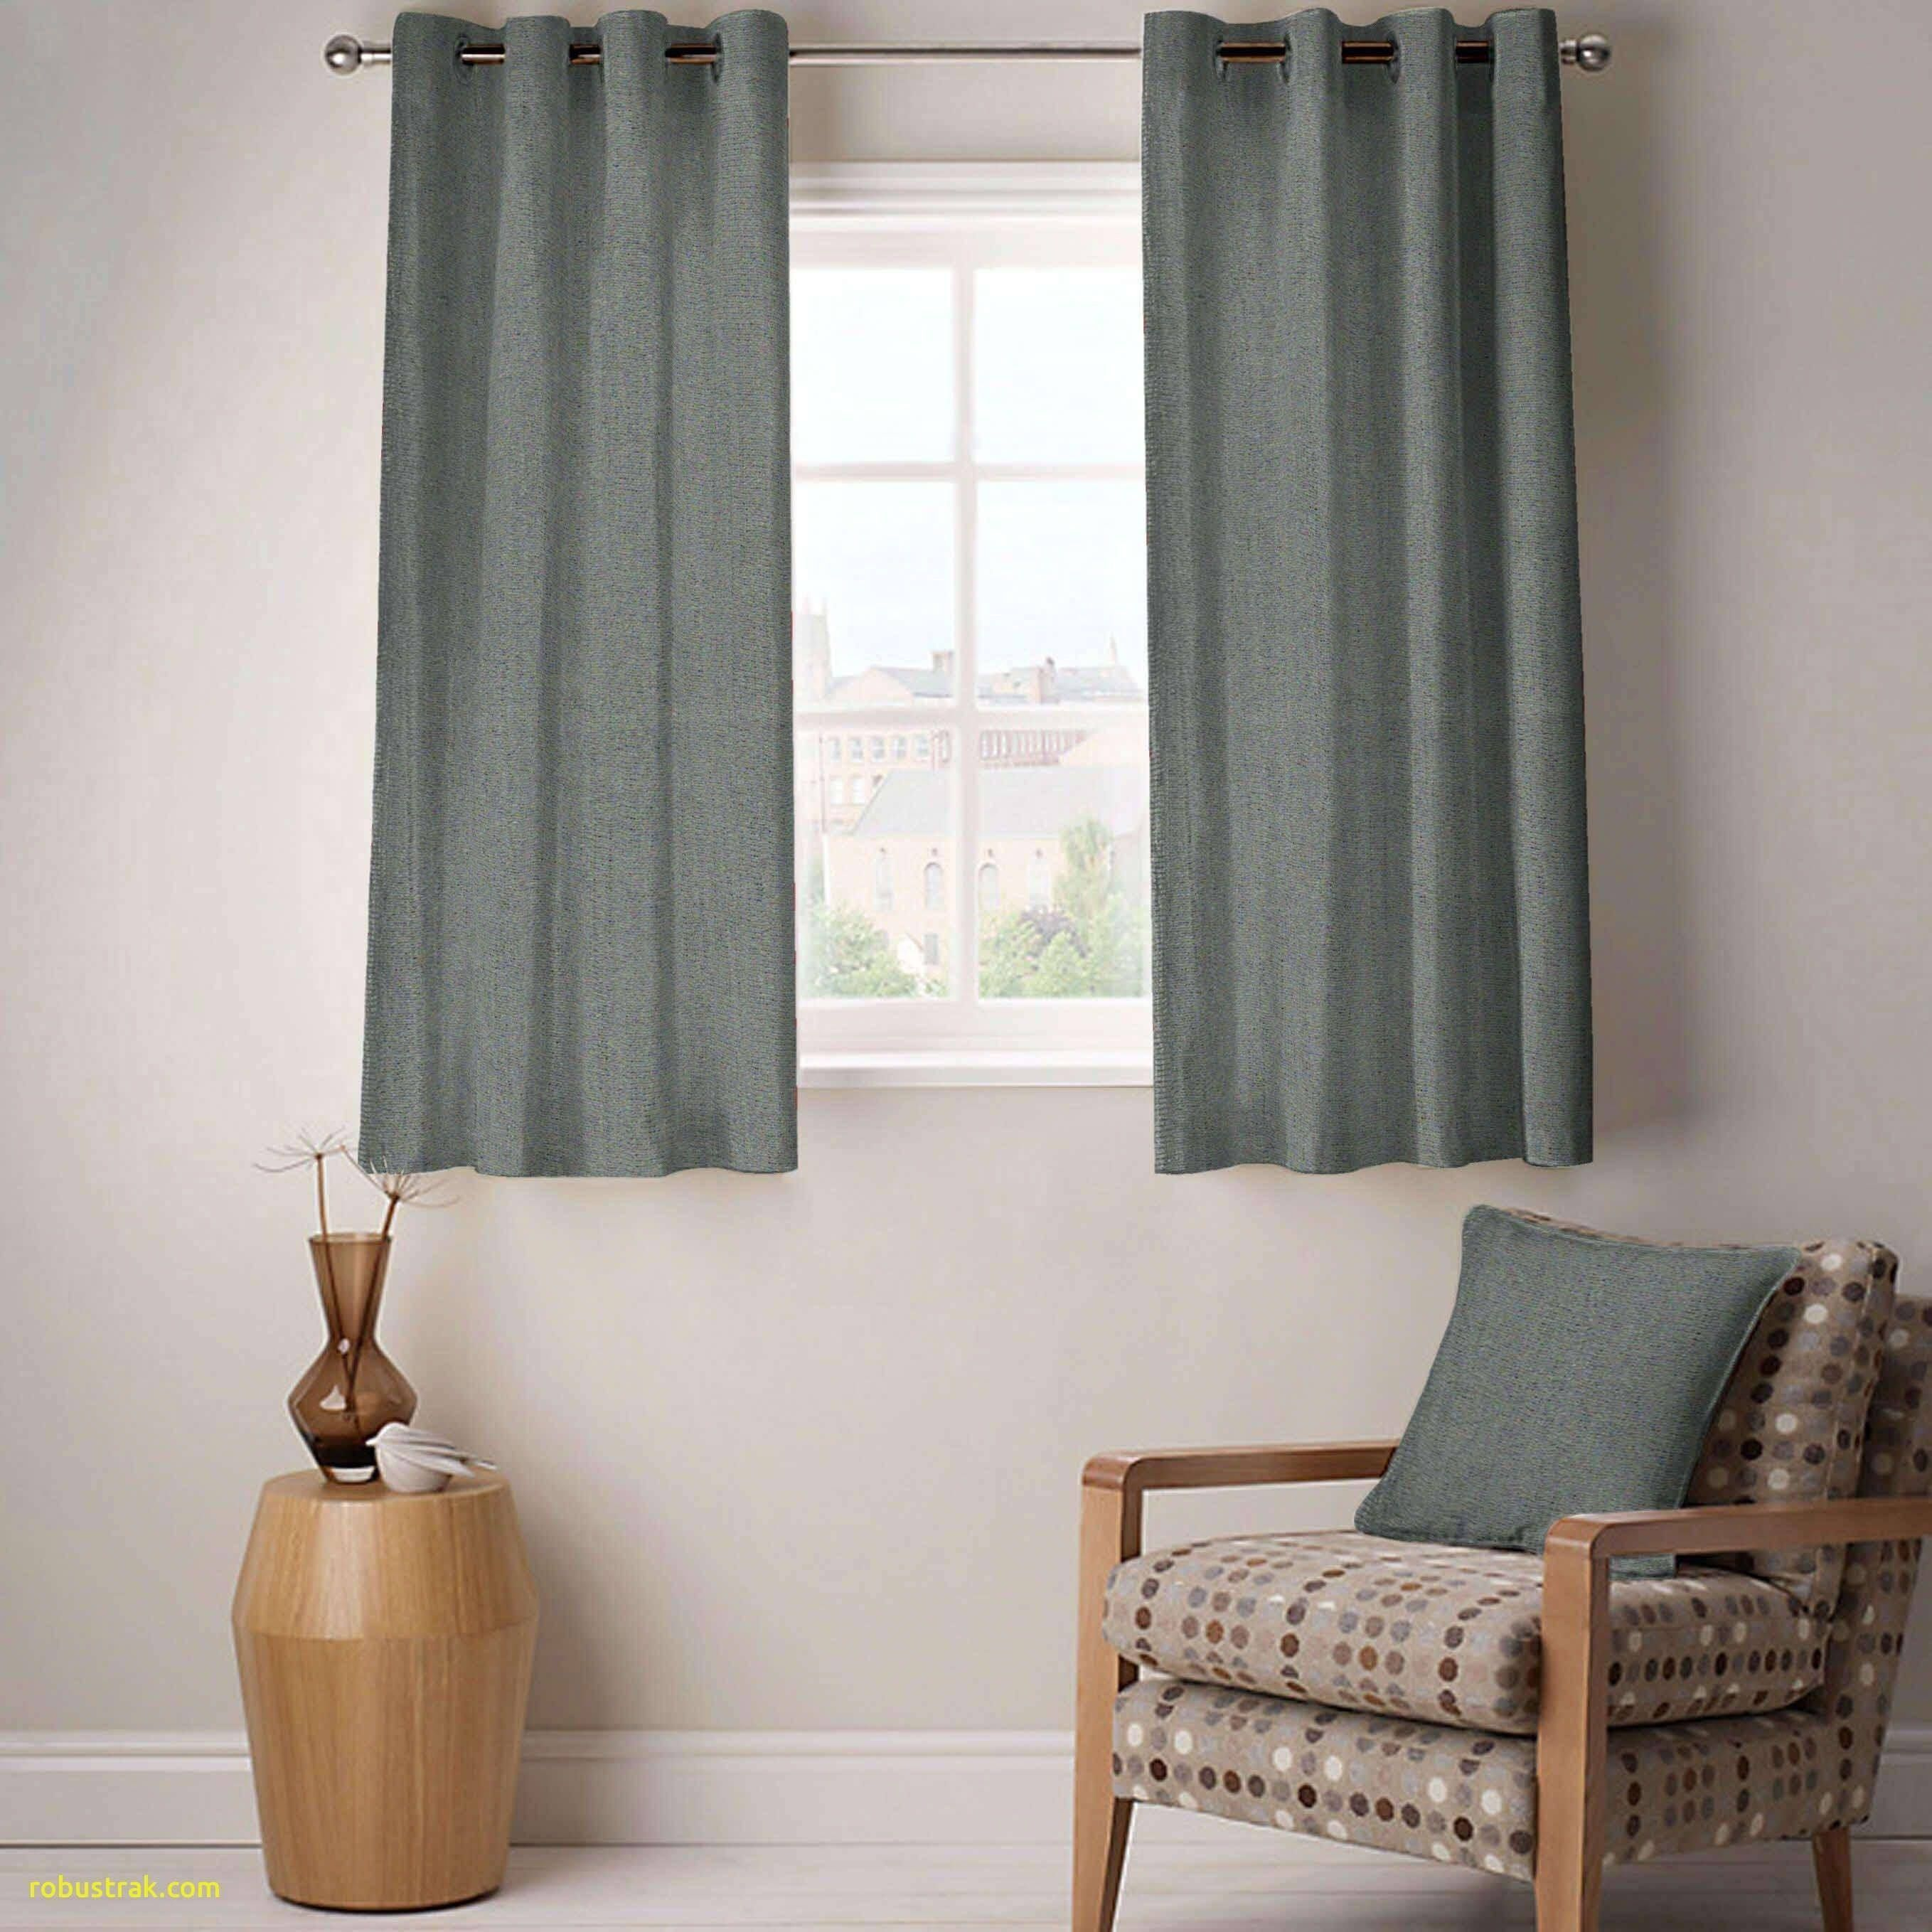 Image result for bedroom curtain ideas lightcurtains